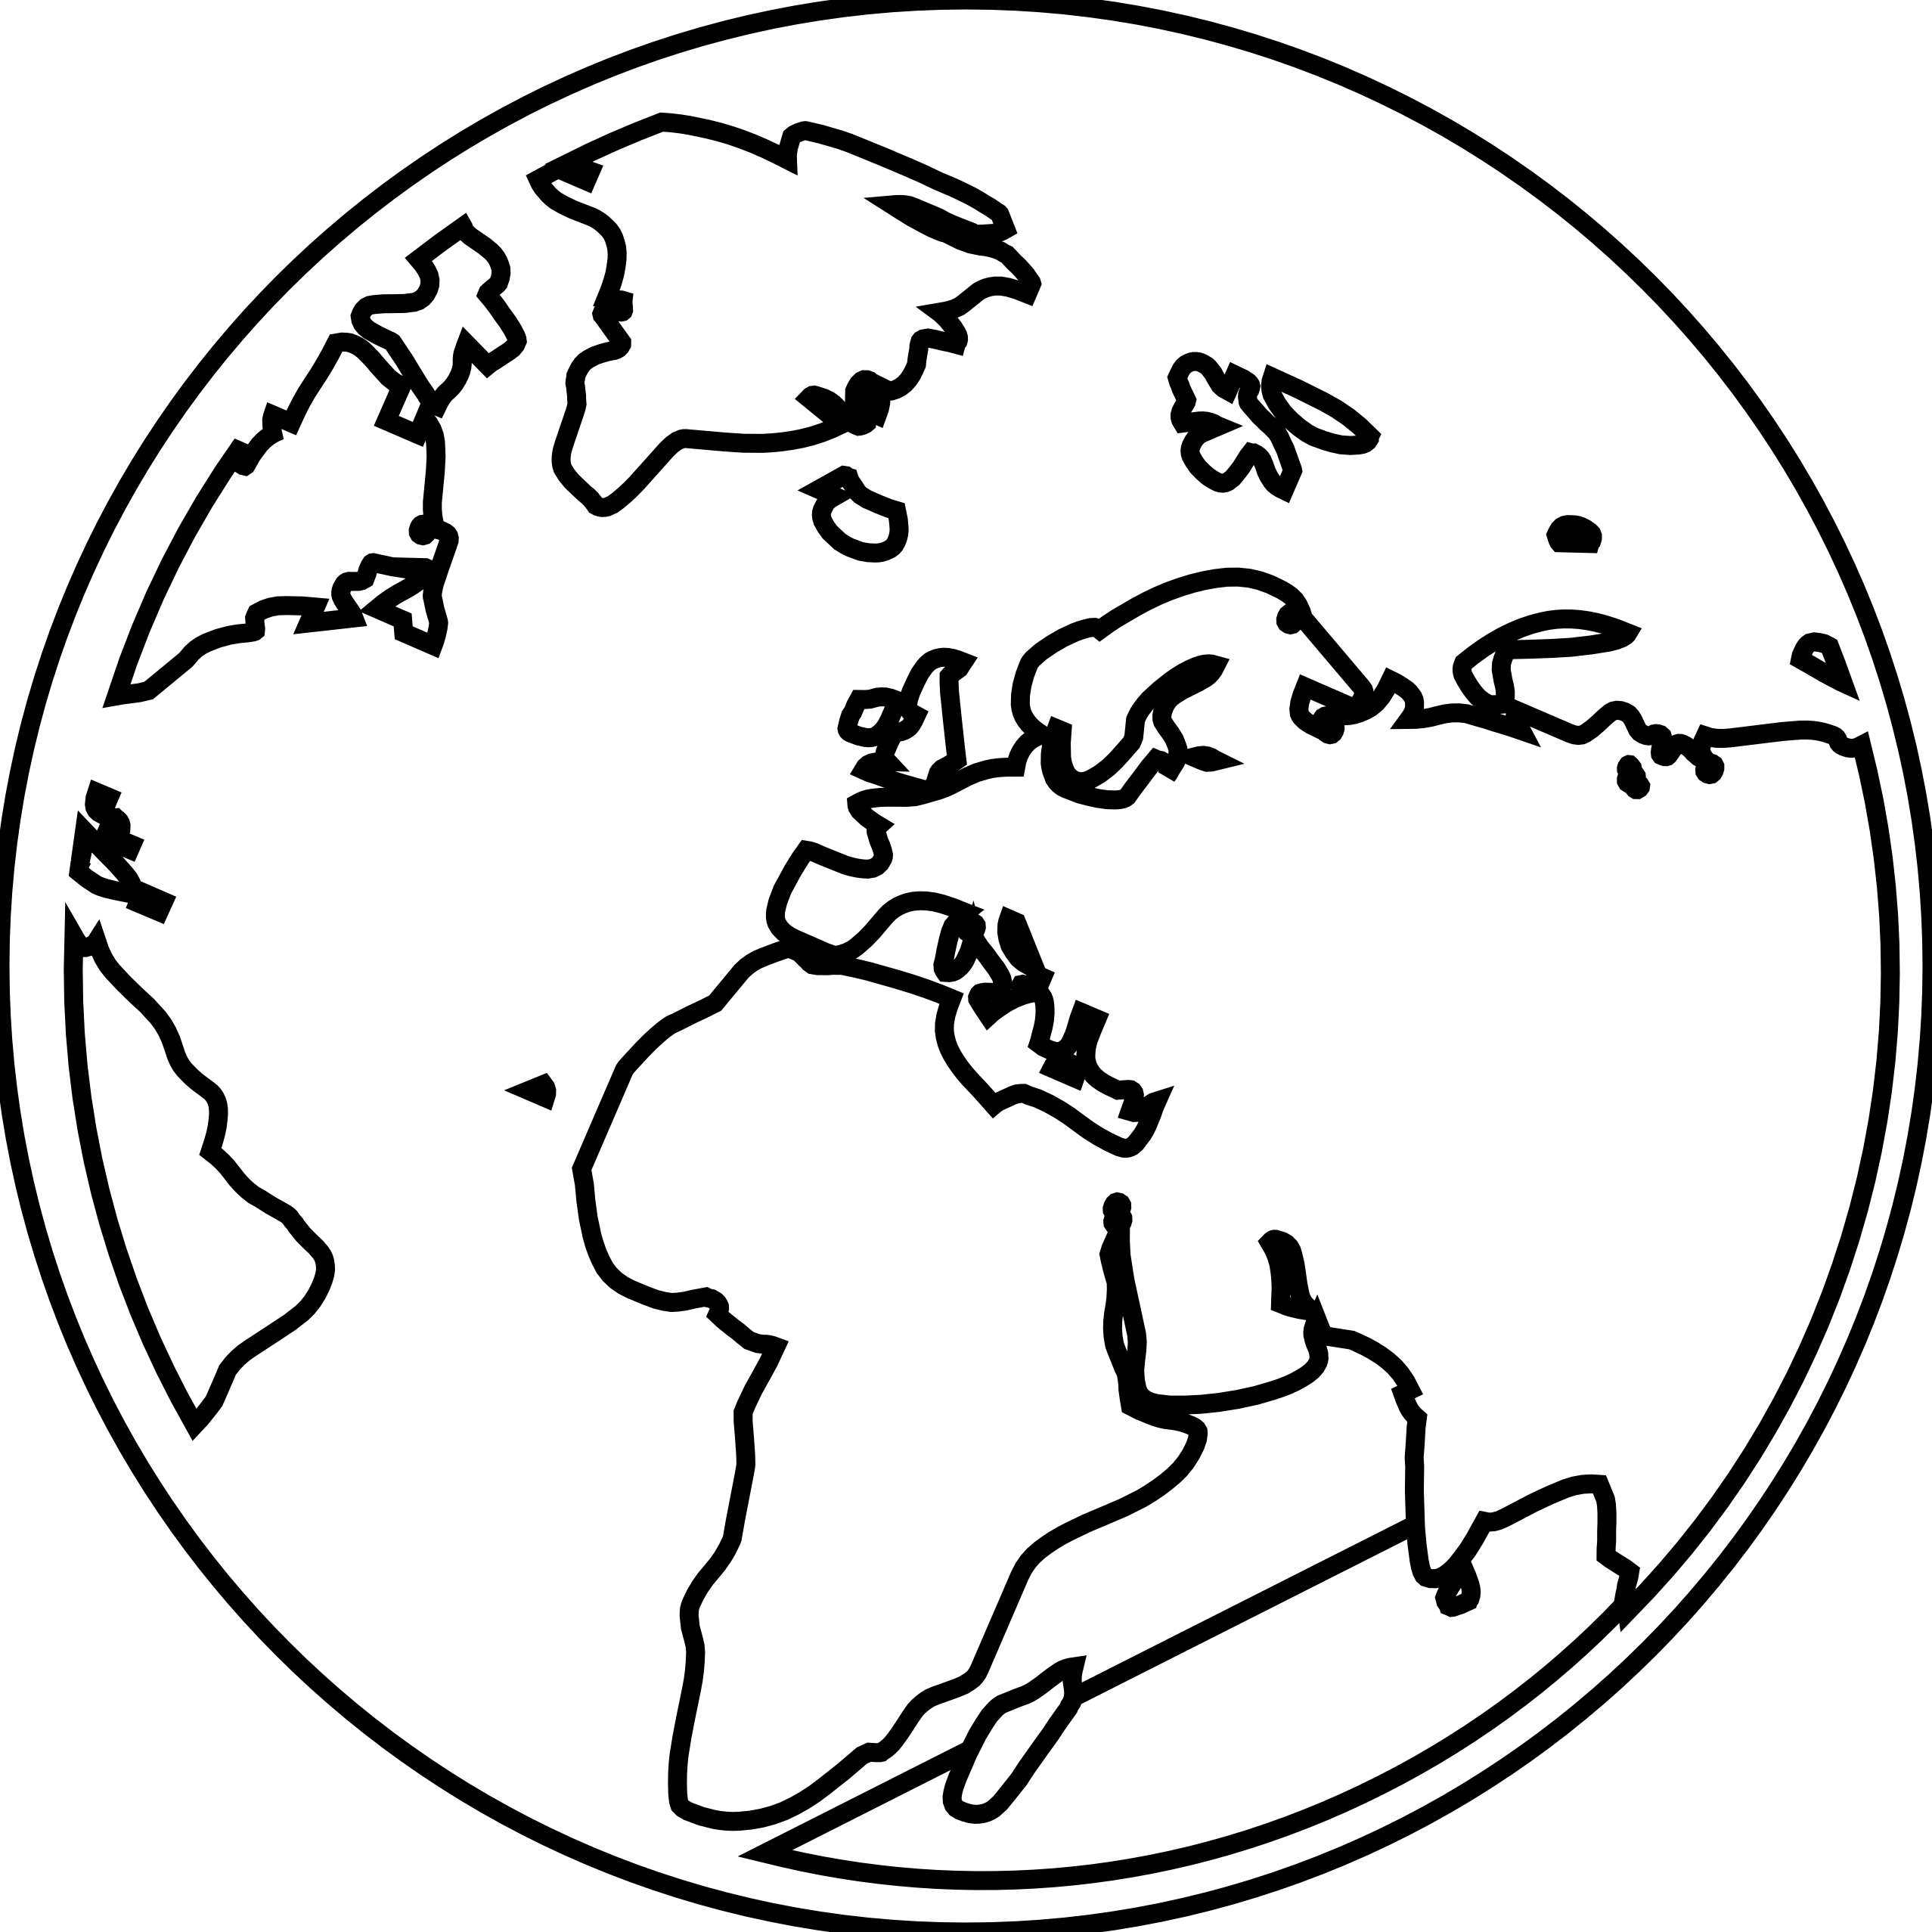 Globe clipart subject. Black and white earth